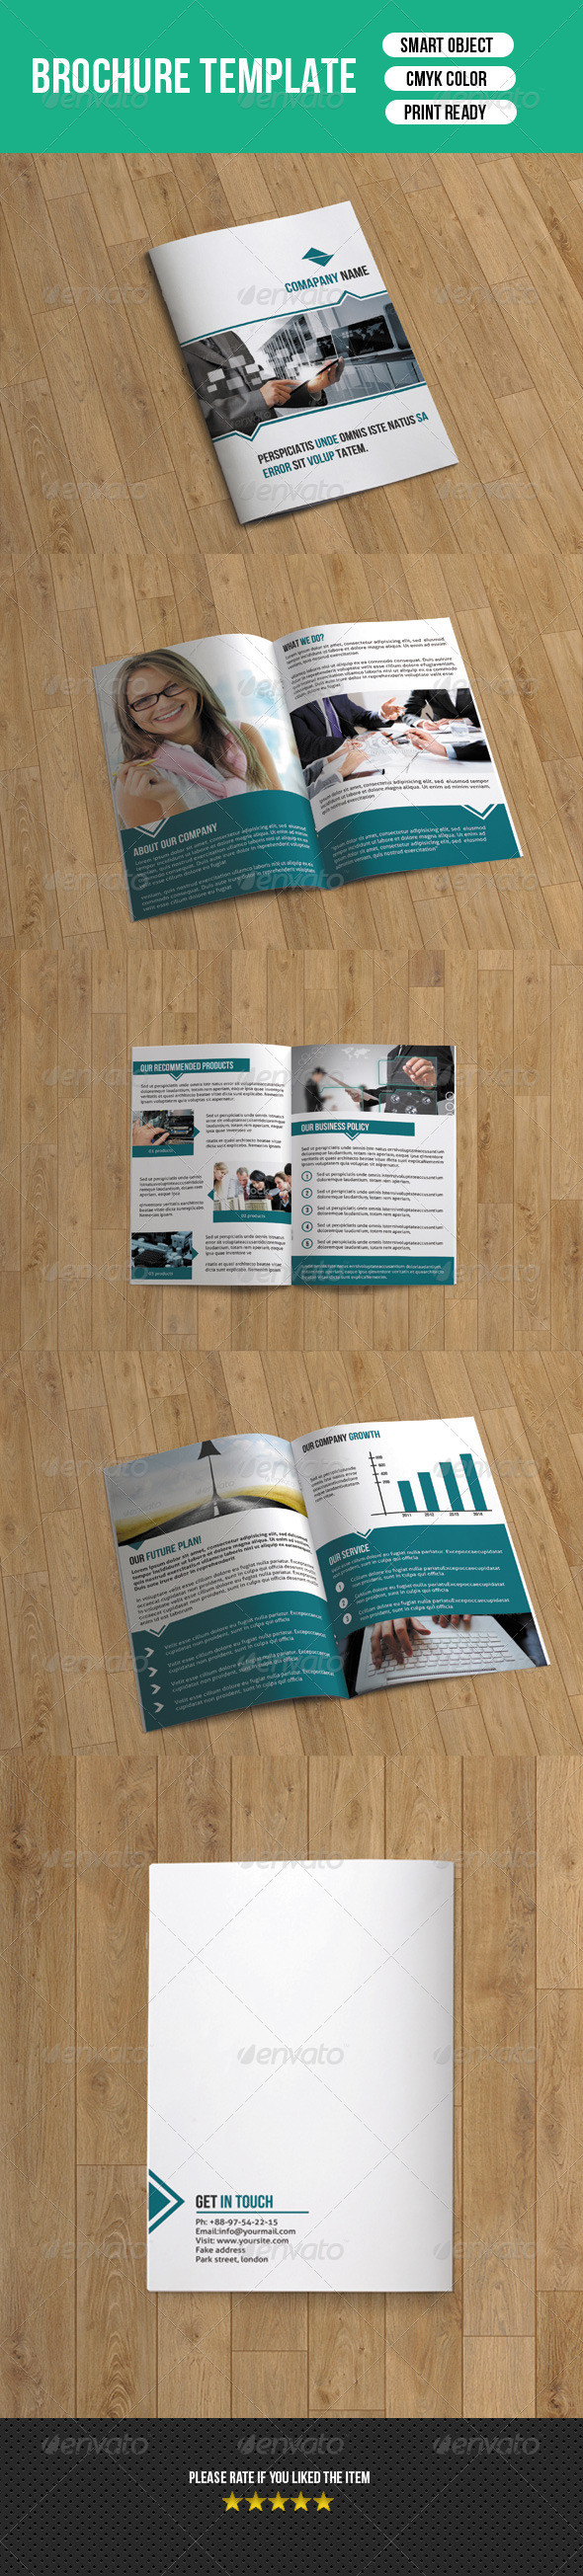 8 Page Business Brochure-V12